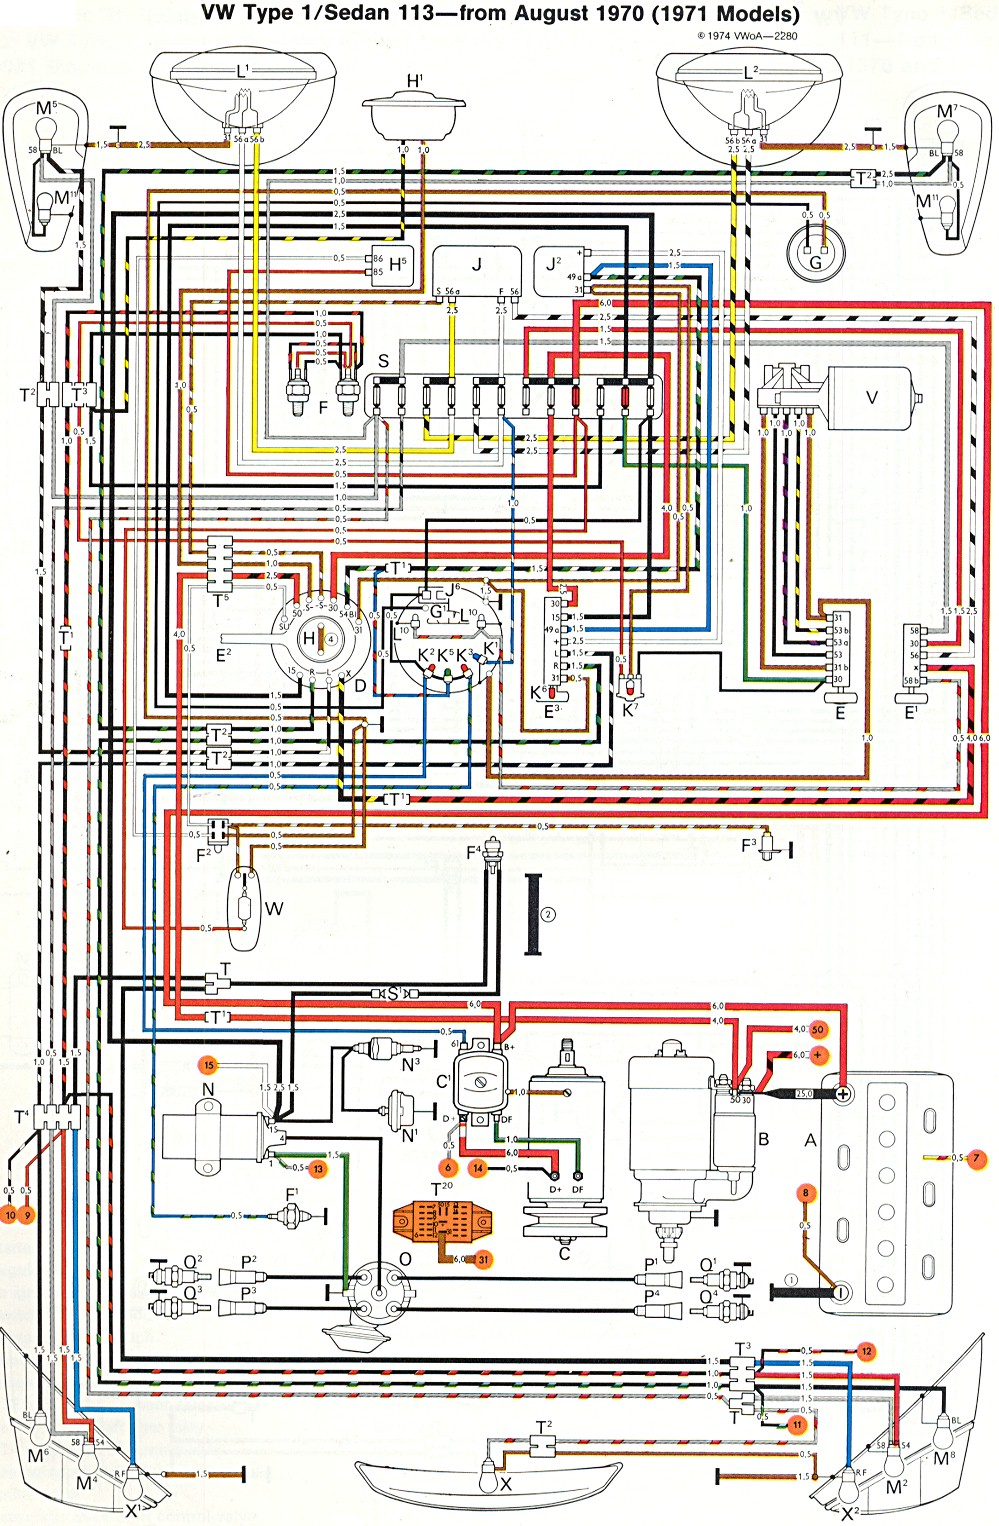 74 vw bug wiring search for wiring diagrams u2022 rh stephenpoon co Volkswagen Beetle Wiring Diagram 74 vw bug wiring diagram